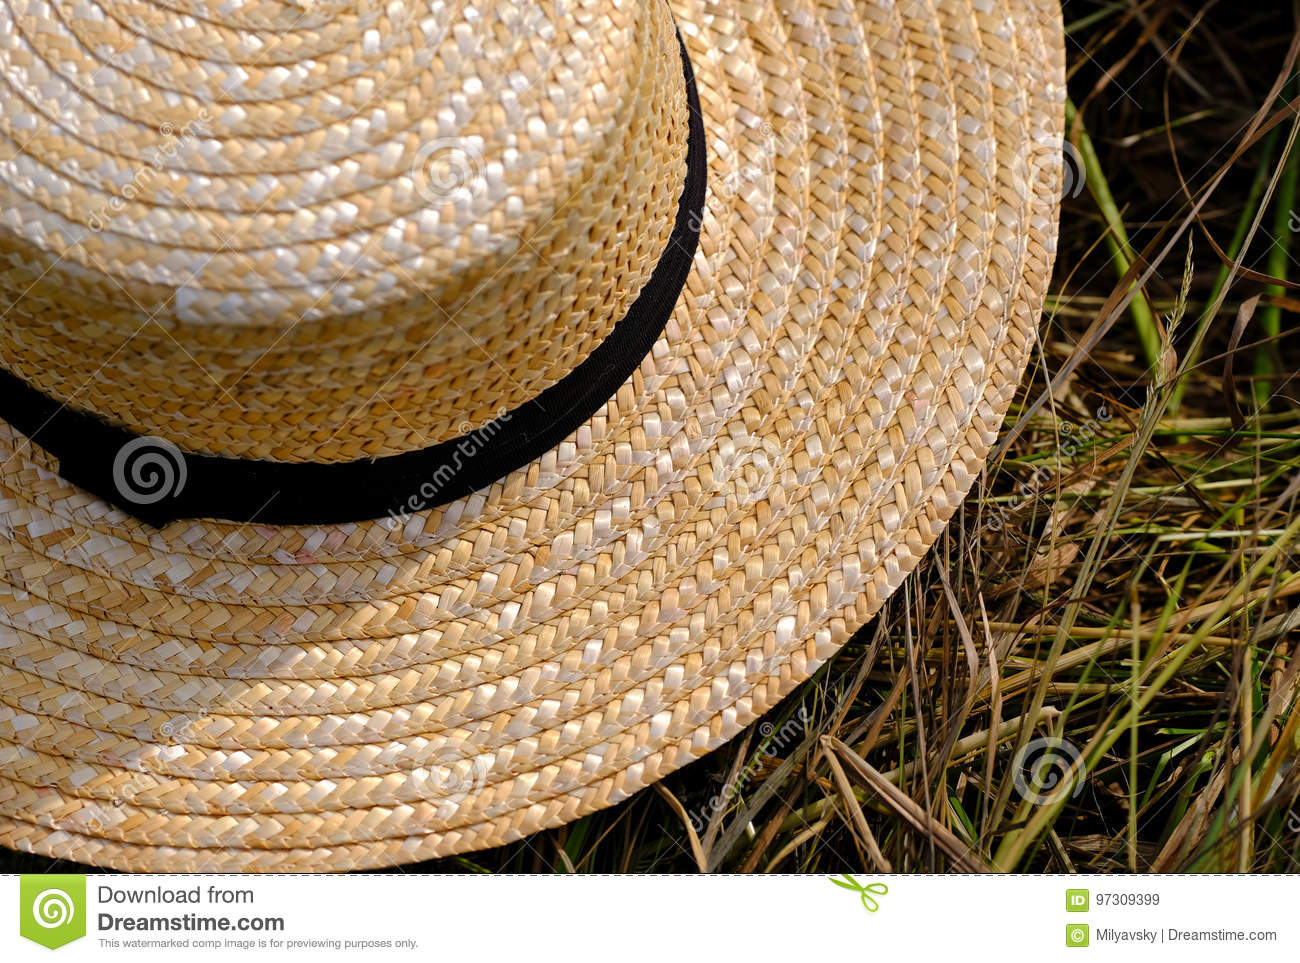 Good quality close up photo of a classic broad-brimmed hat view from above   you may see classic farmer hat with dark almost black wide fabric strip  around ... 5f4afd41ebfb